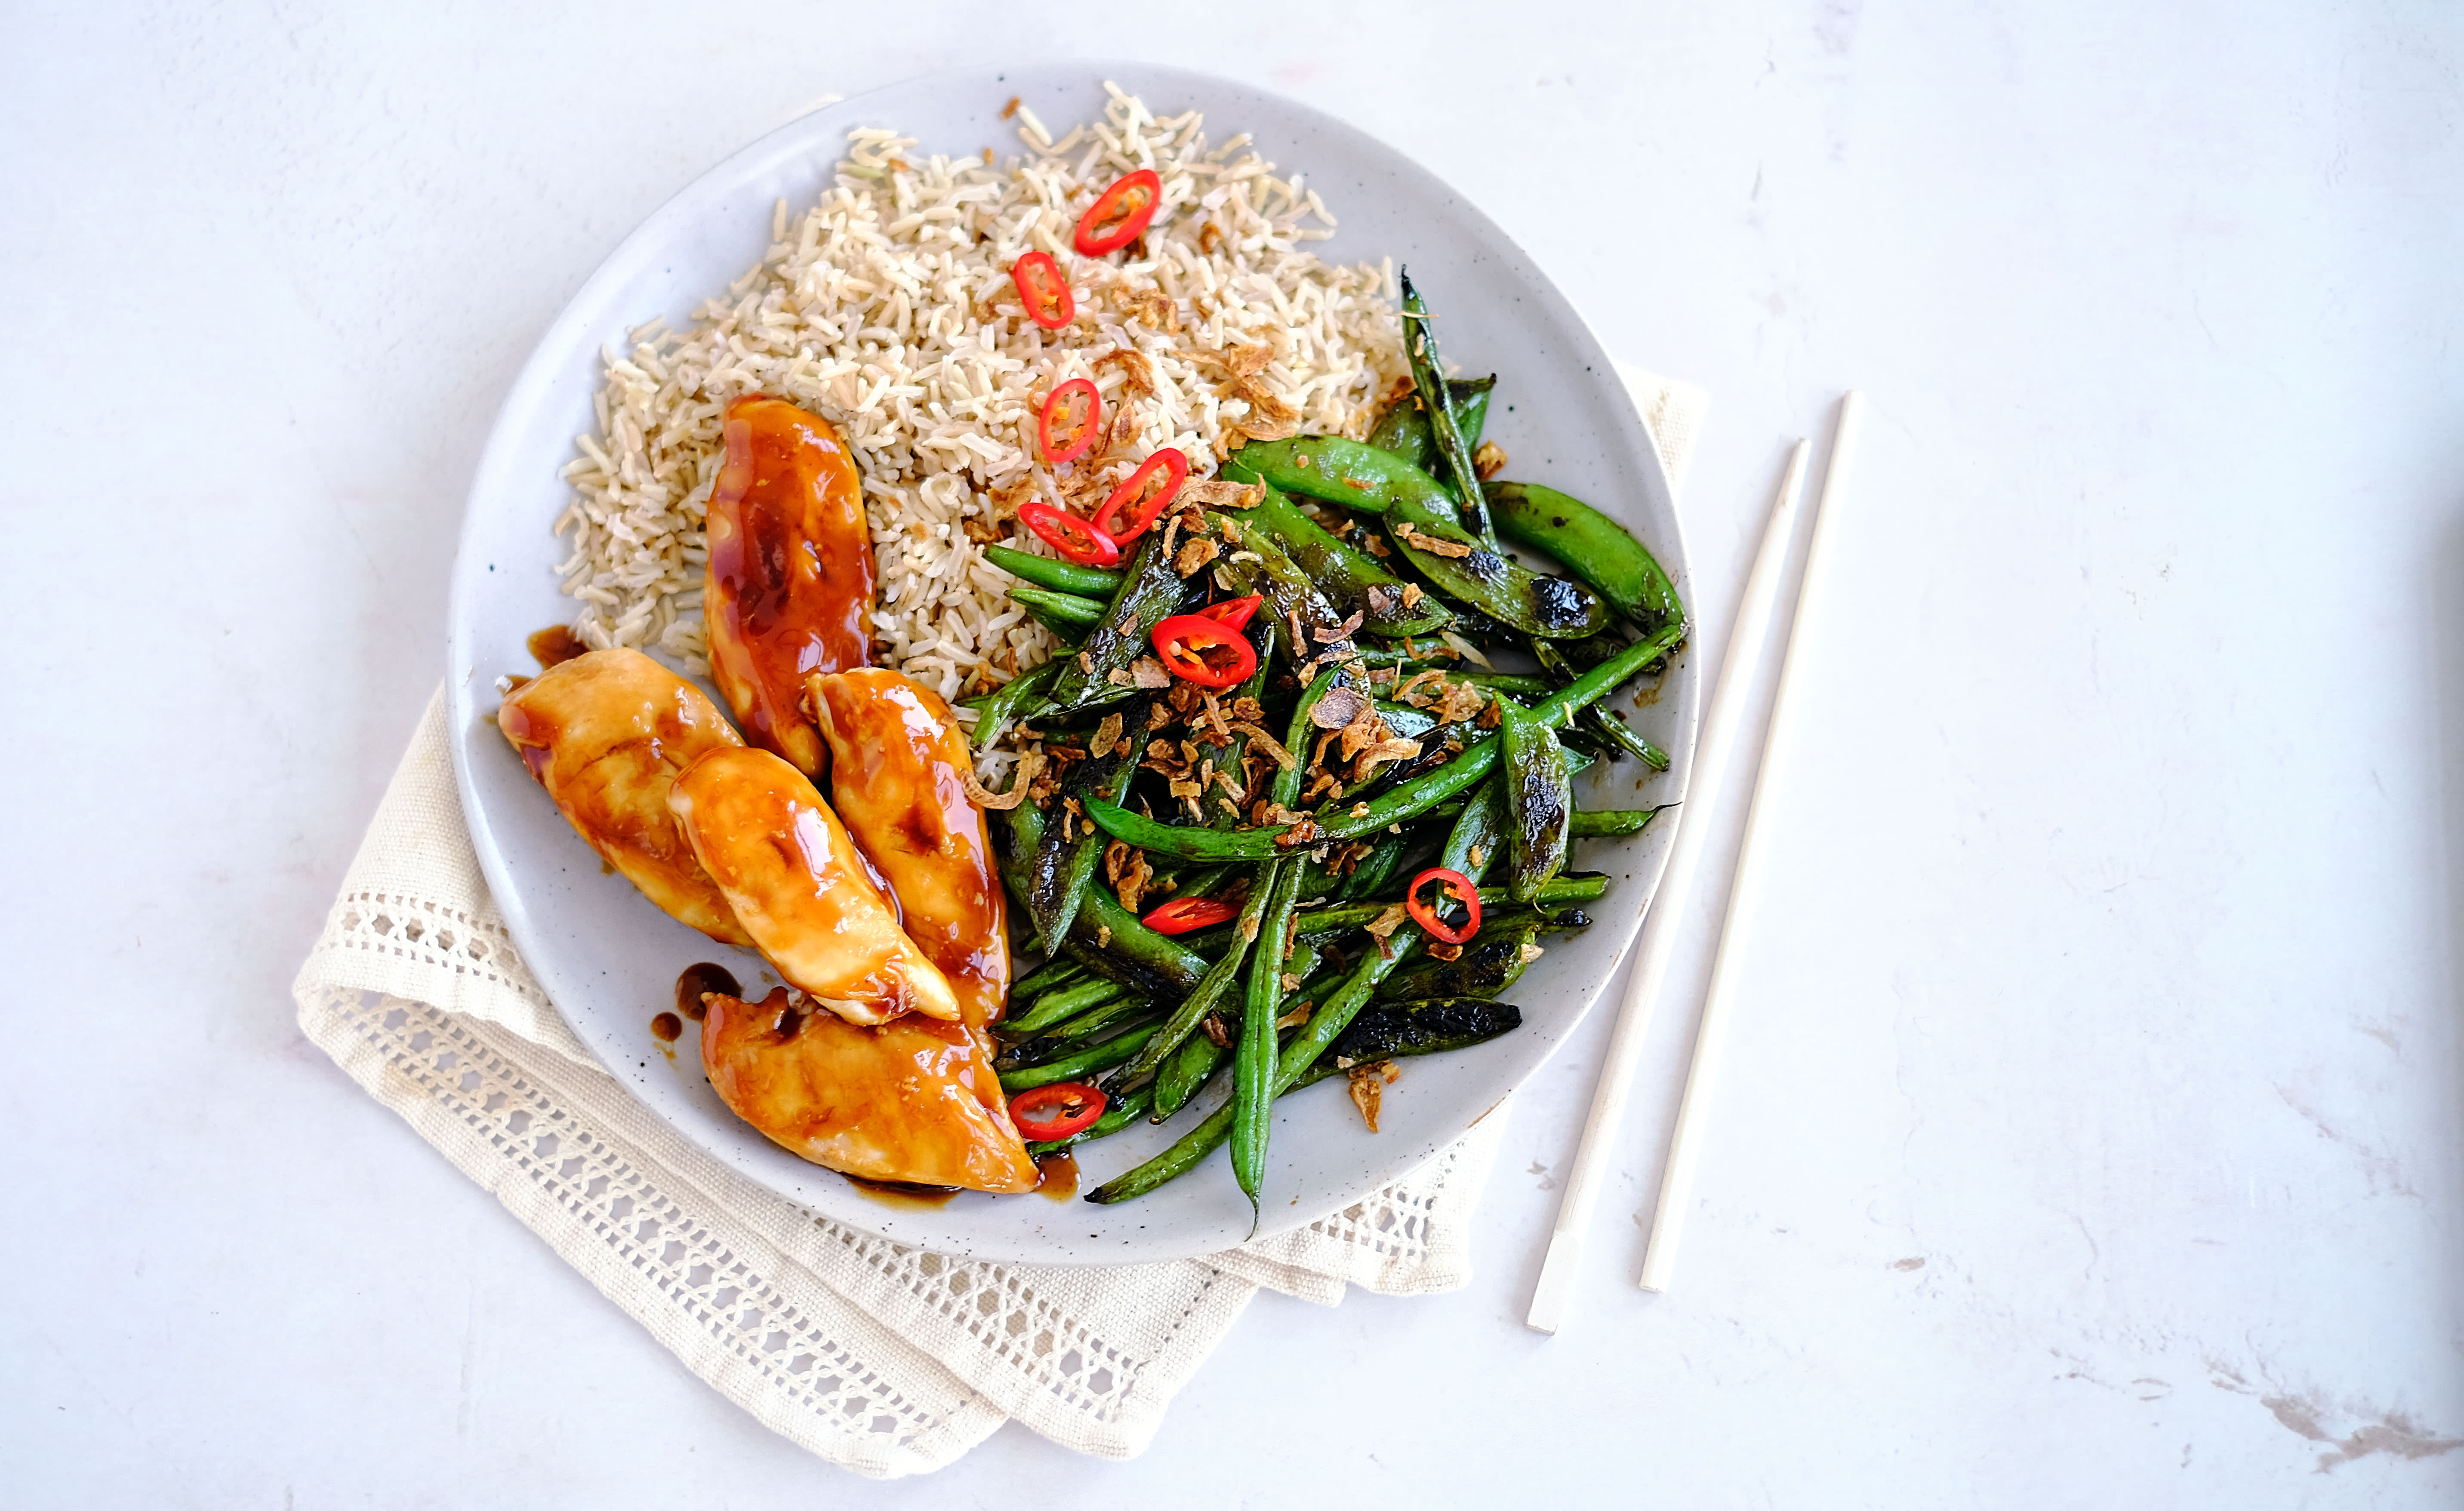 Glazed Chicken with Blistered Greens and Brown Rice